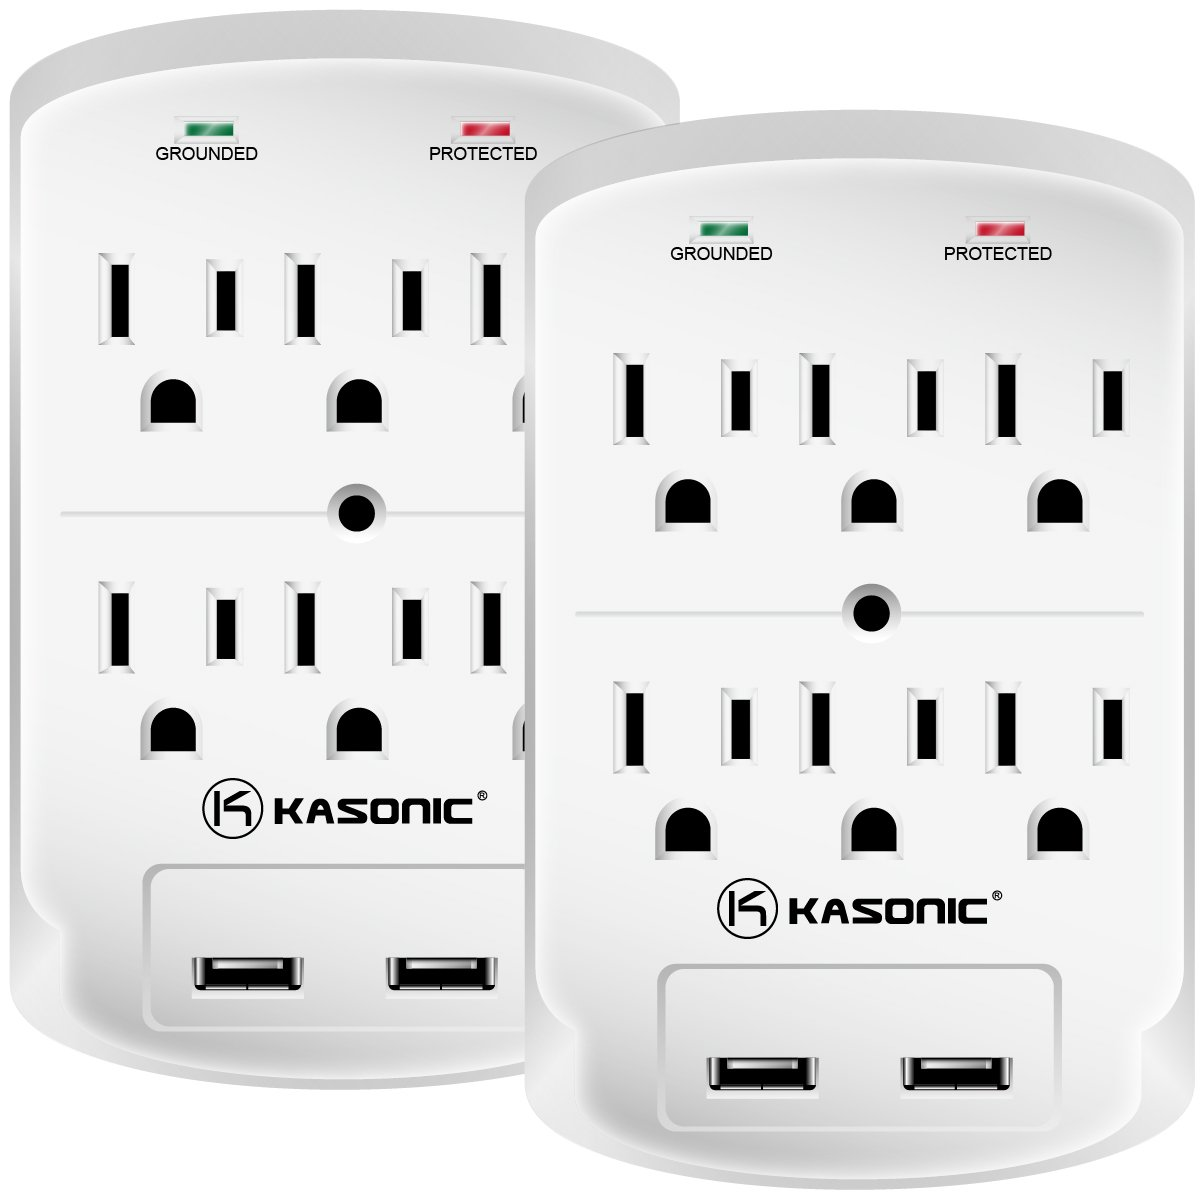 Wall-Mount Power Outlet, Kasonic 6 AC Socket Surge Protector with 2.1Amp Dual USB Charging Station; Grounding and Protection Indicator for Home, Office ETL Certified (2 Pack) by Kasonic